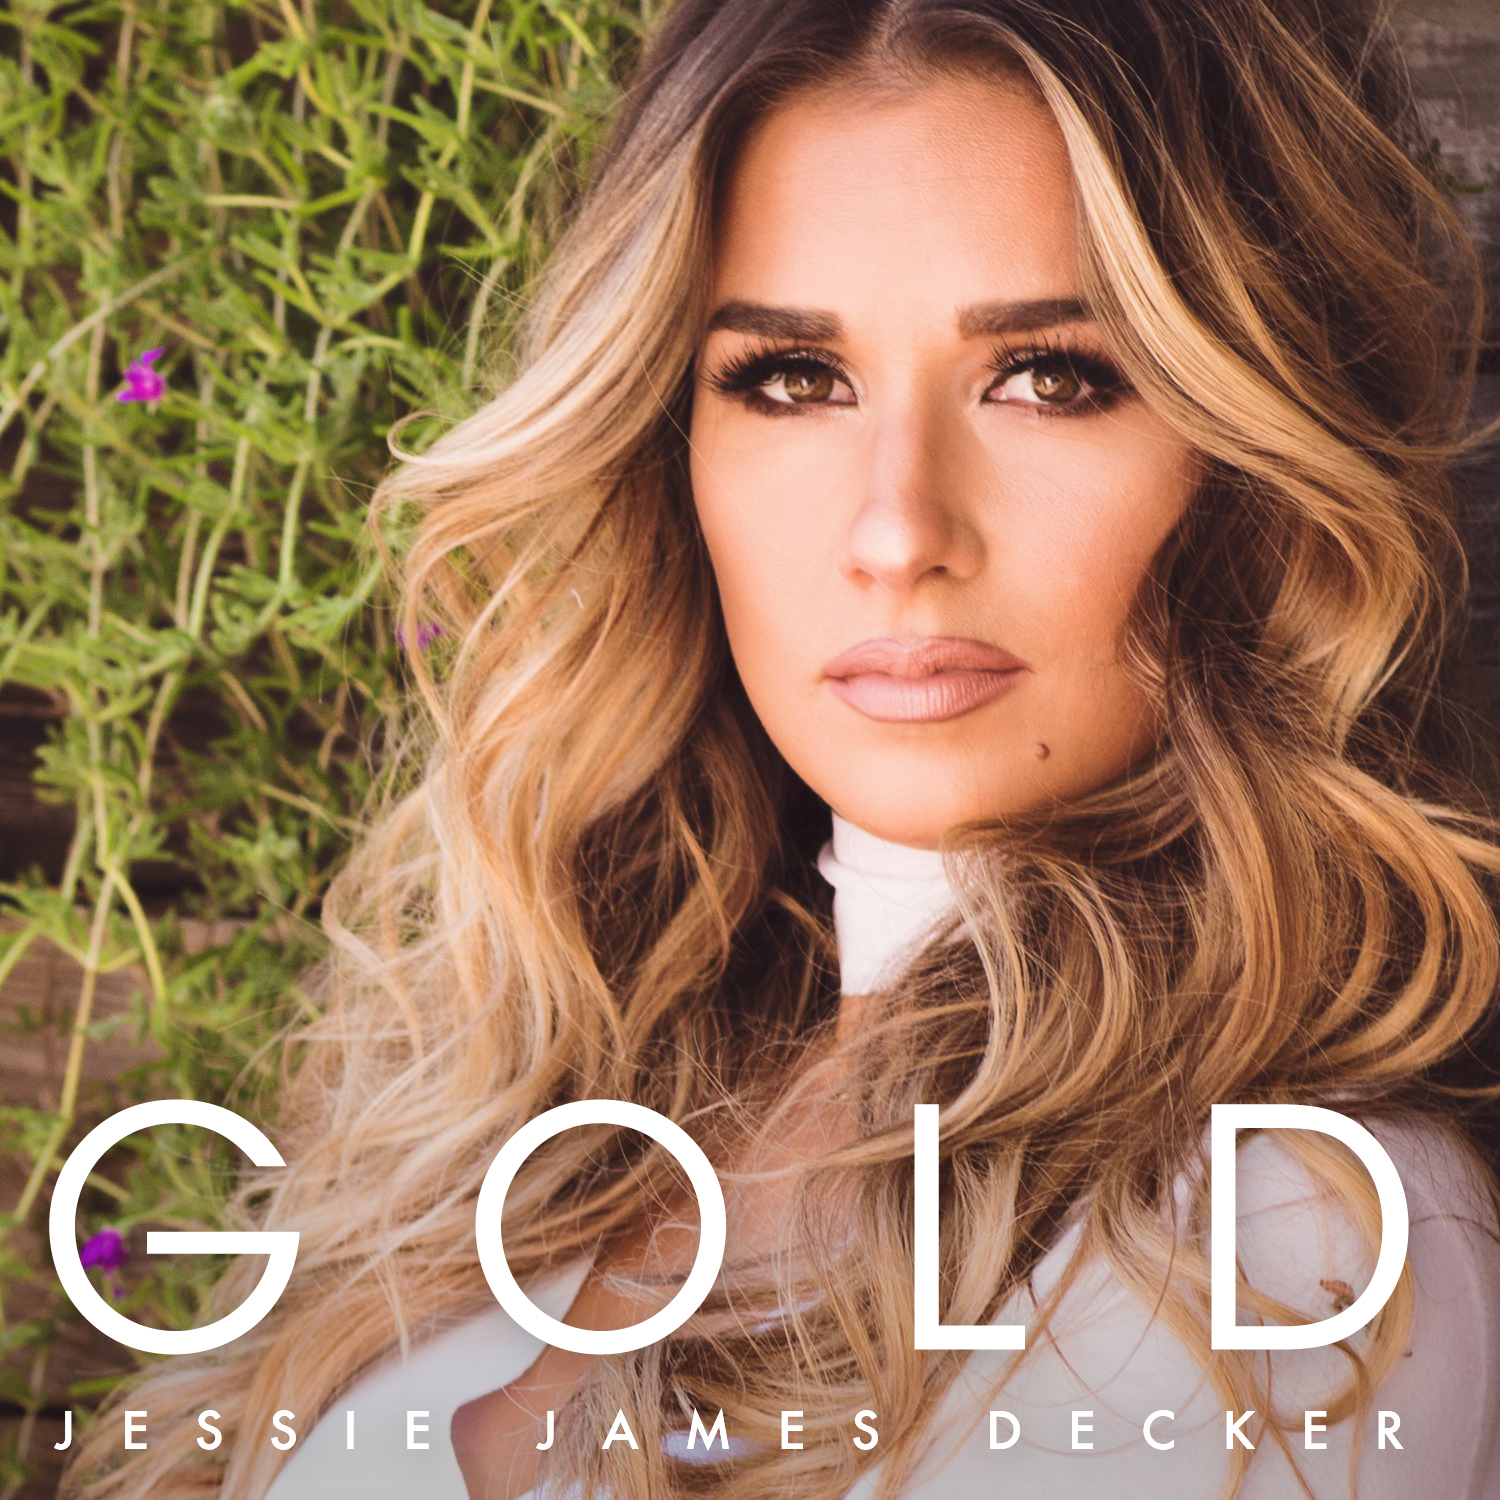 Jessie James Decker Announces New Ep Reveals Cover Art